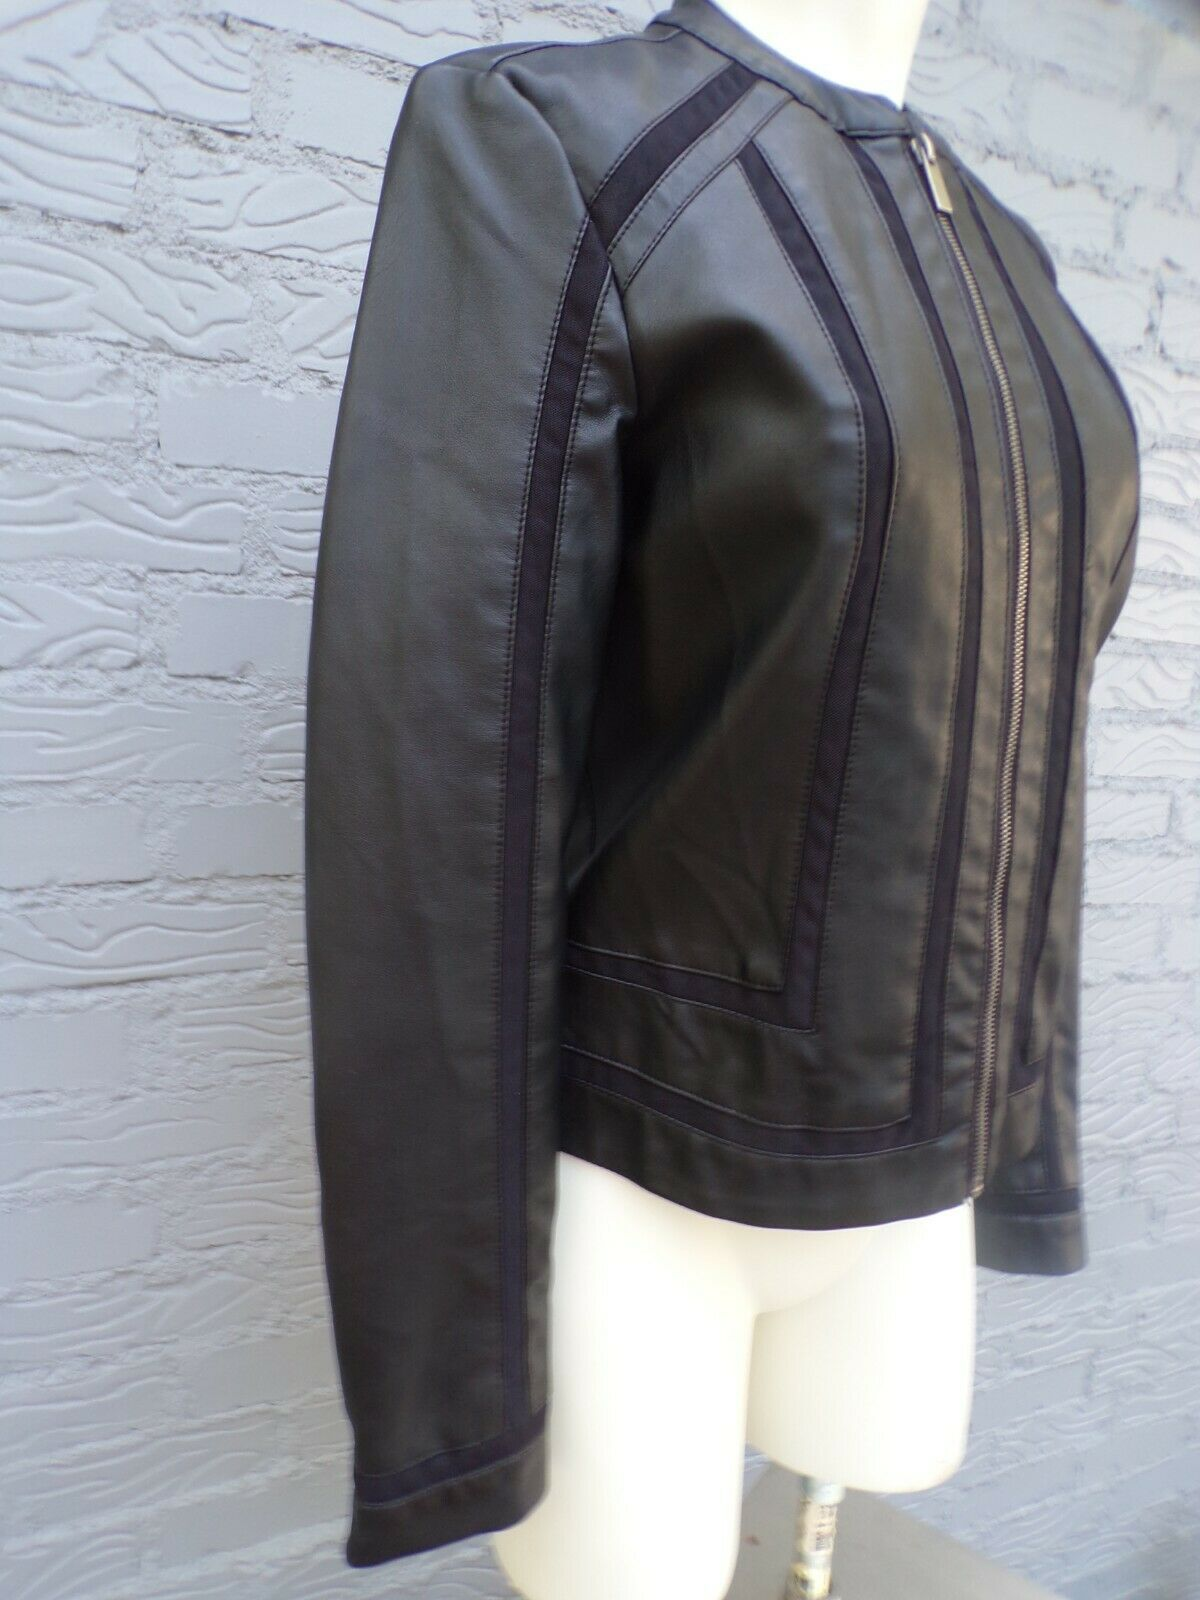 Baccini Women's Faux Leather Jacket With Zipper Front Black Size P/Sm